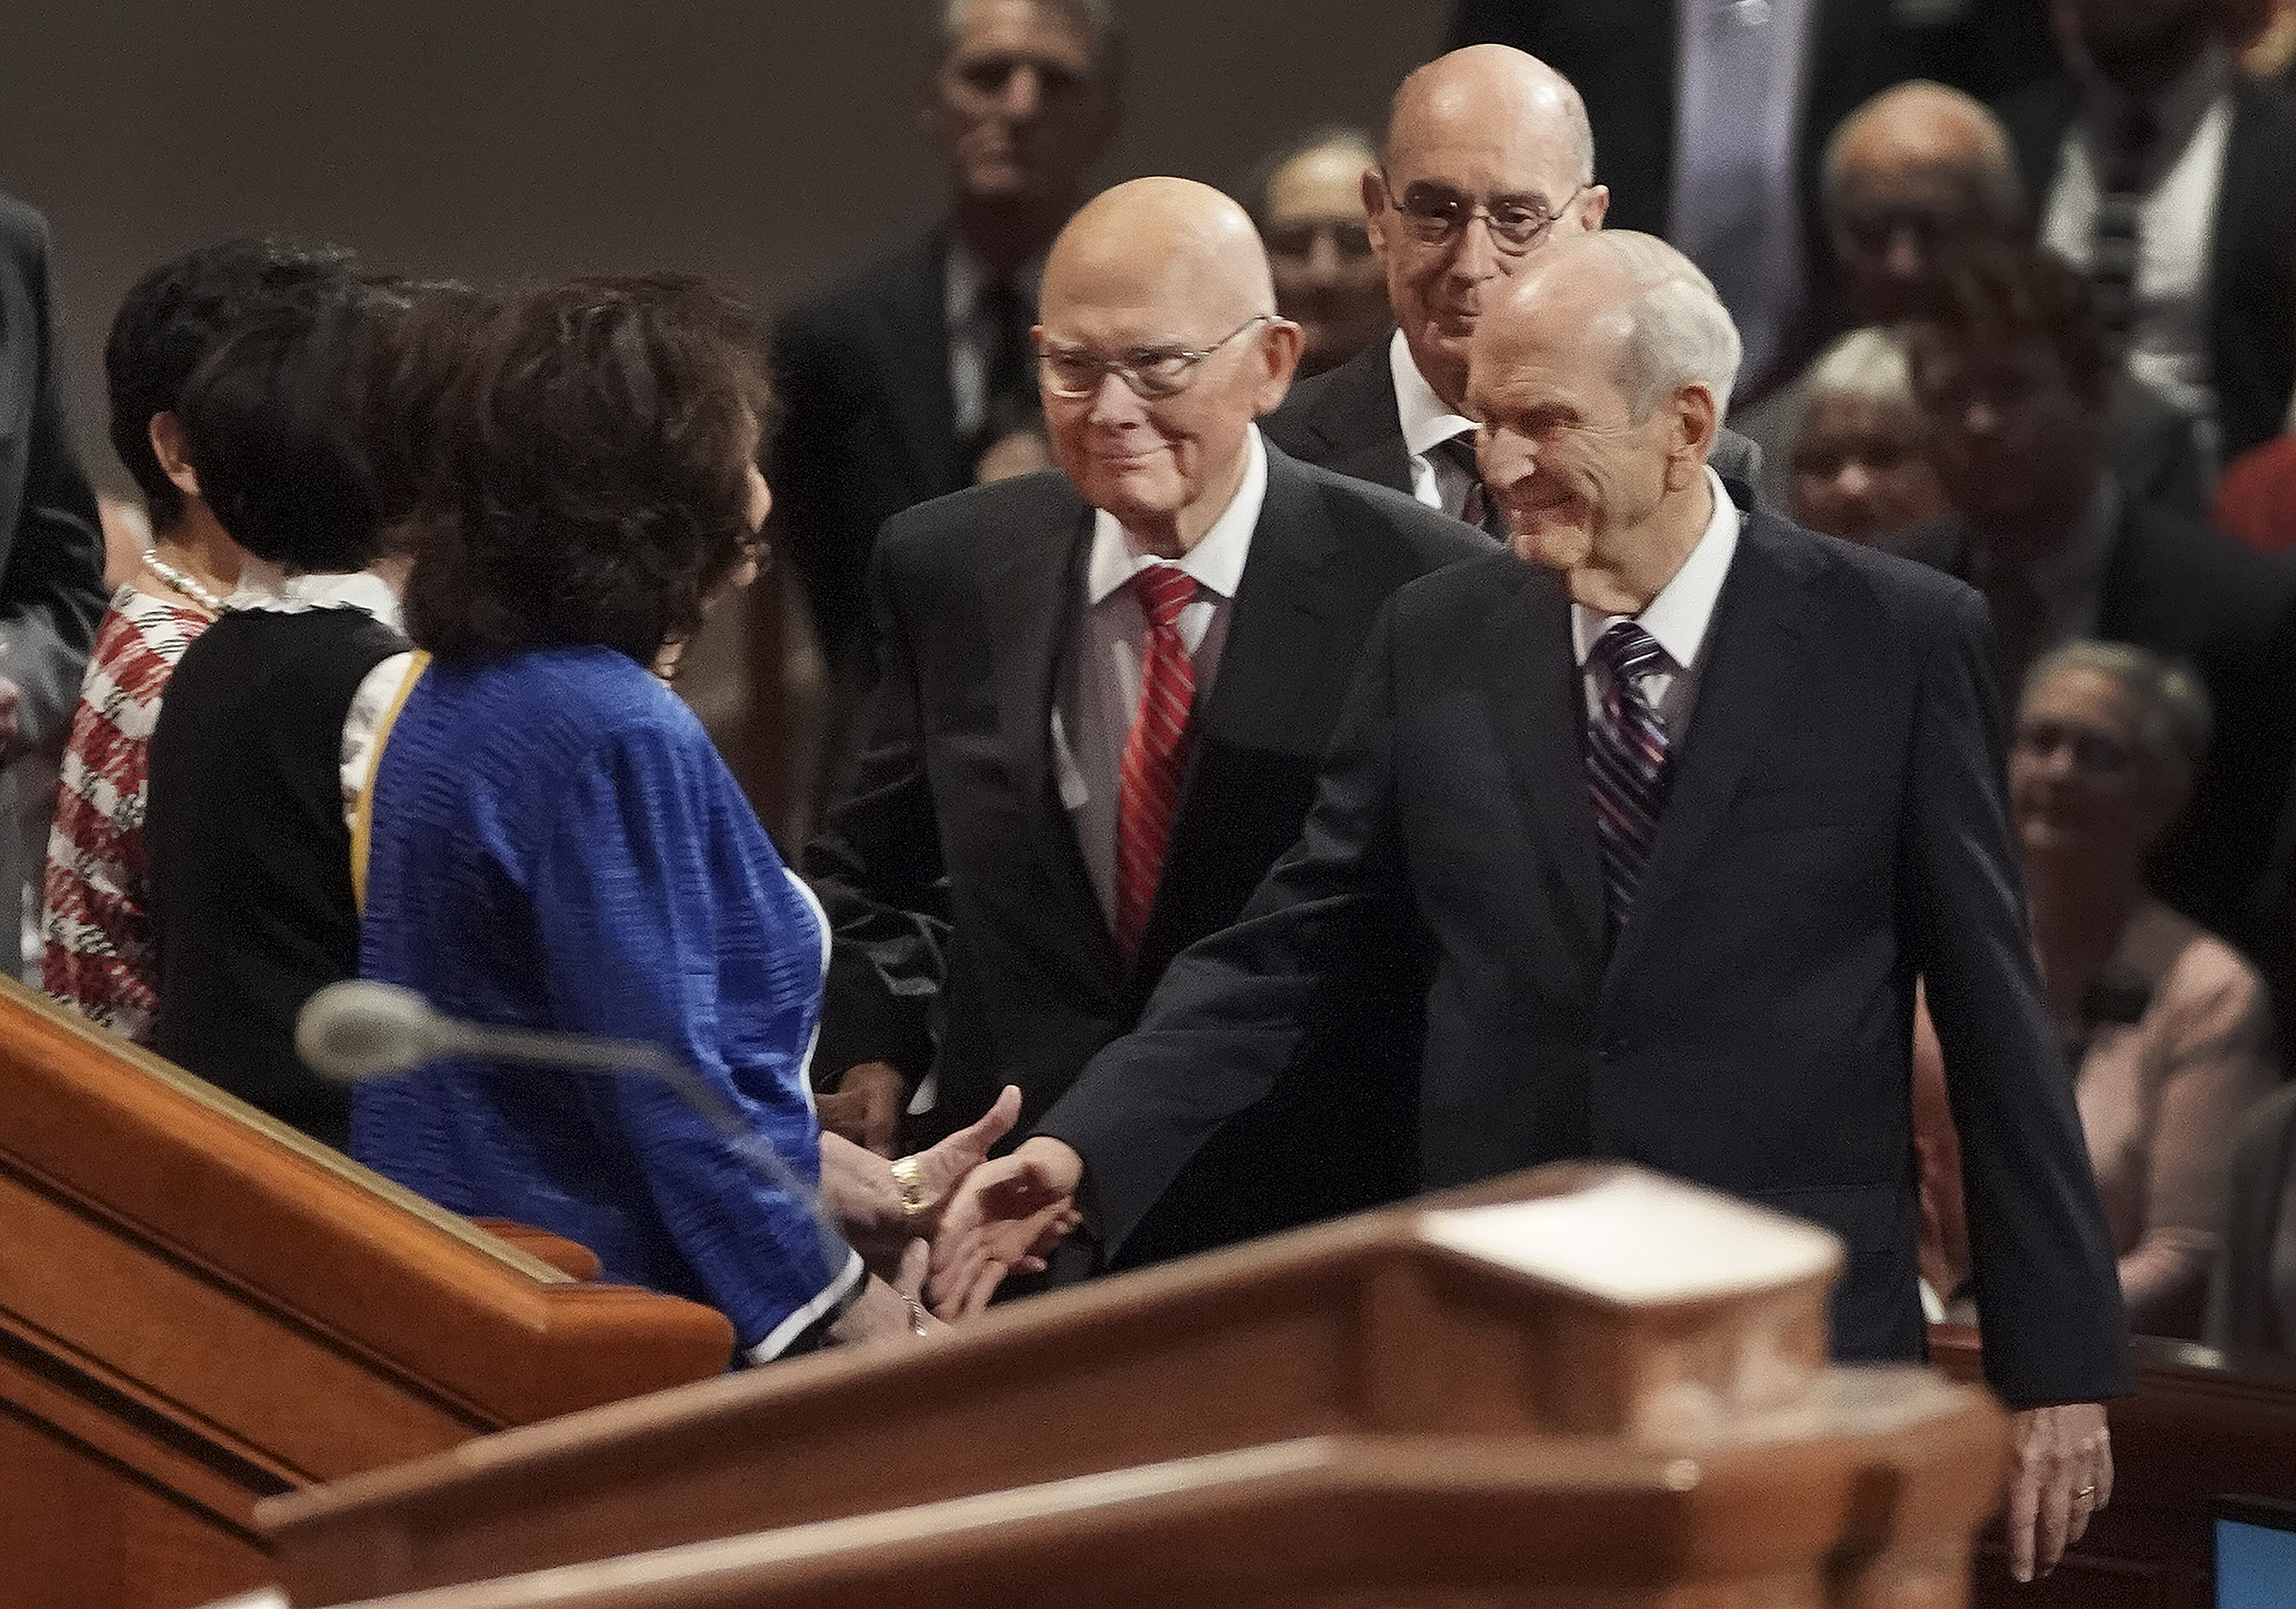 President Russell M. Nelson greets his wife, Sister Wendy Nelson, as he and his counselors, President Dallin H. Oaks, first counselor in the First Presidency and President Henry B. Eyring, second counselor in the First Presidency, enter the Conference Center before the Saturday morning session of the 189th Semiannual General Conference of The Church of Jesus Christ of Latter-day Saints in Salt Lake City on Saturday, Oct. 5, 2019.